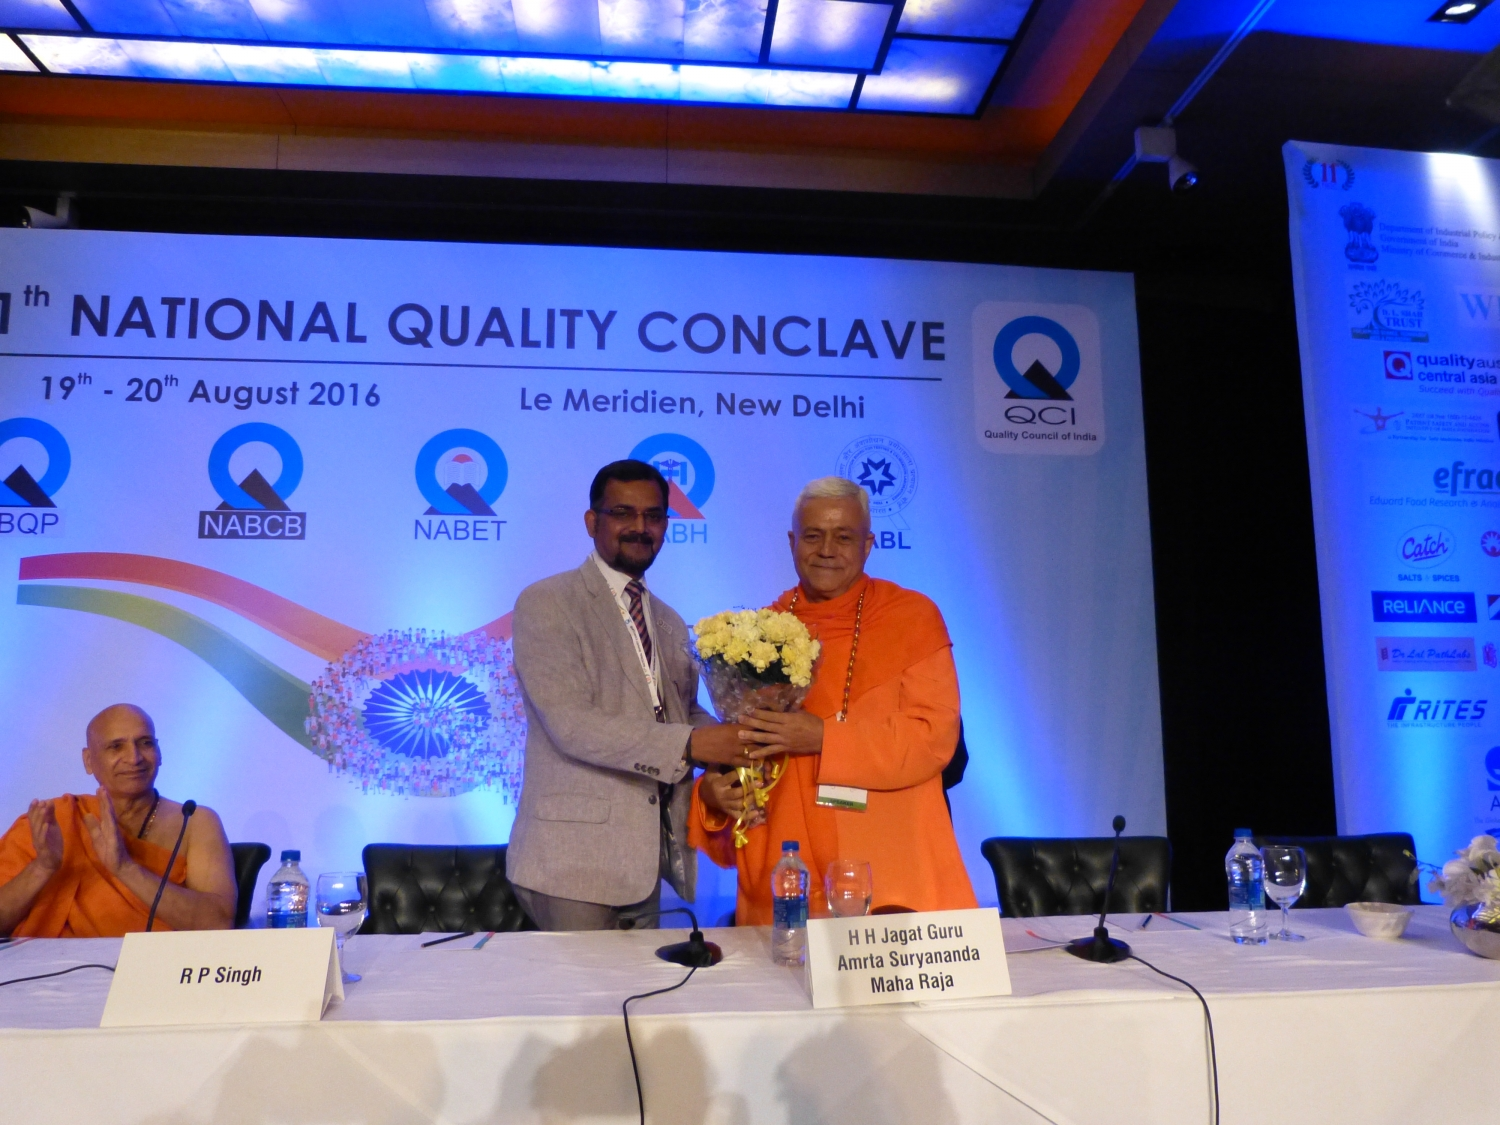 H.H. Jagat Guru Amrta Súryánanda Mahá Rája com Dr. Ravi P. Singh, Secretário Geral do the Quality Council of India